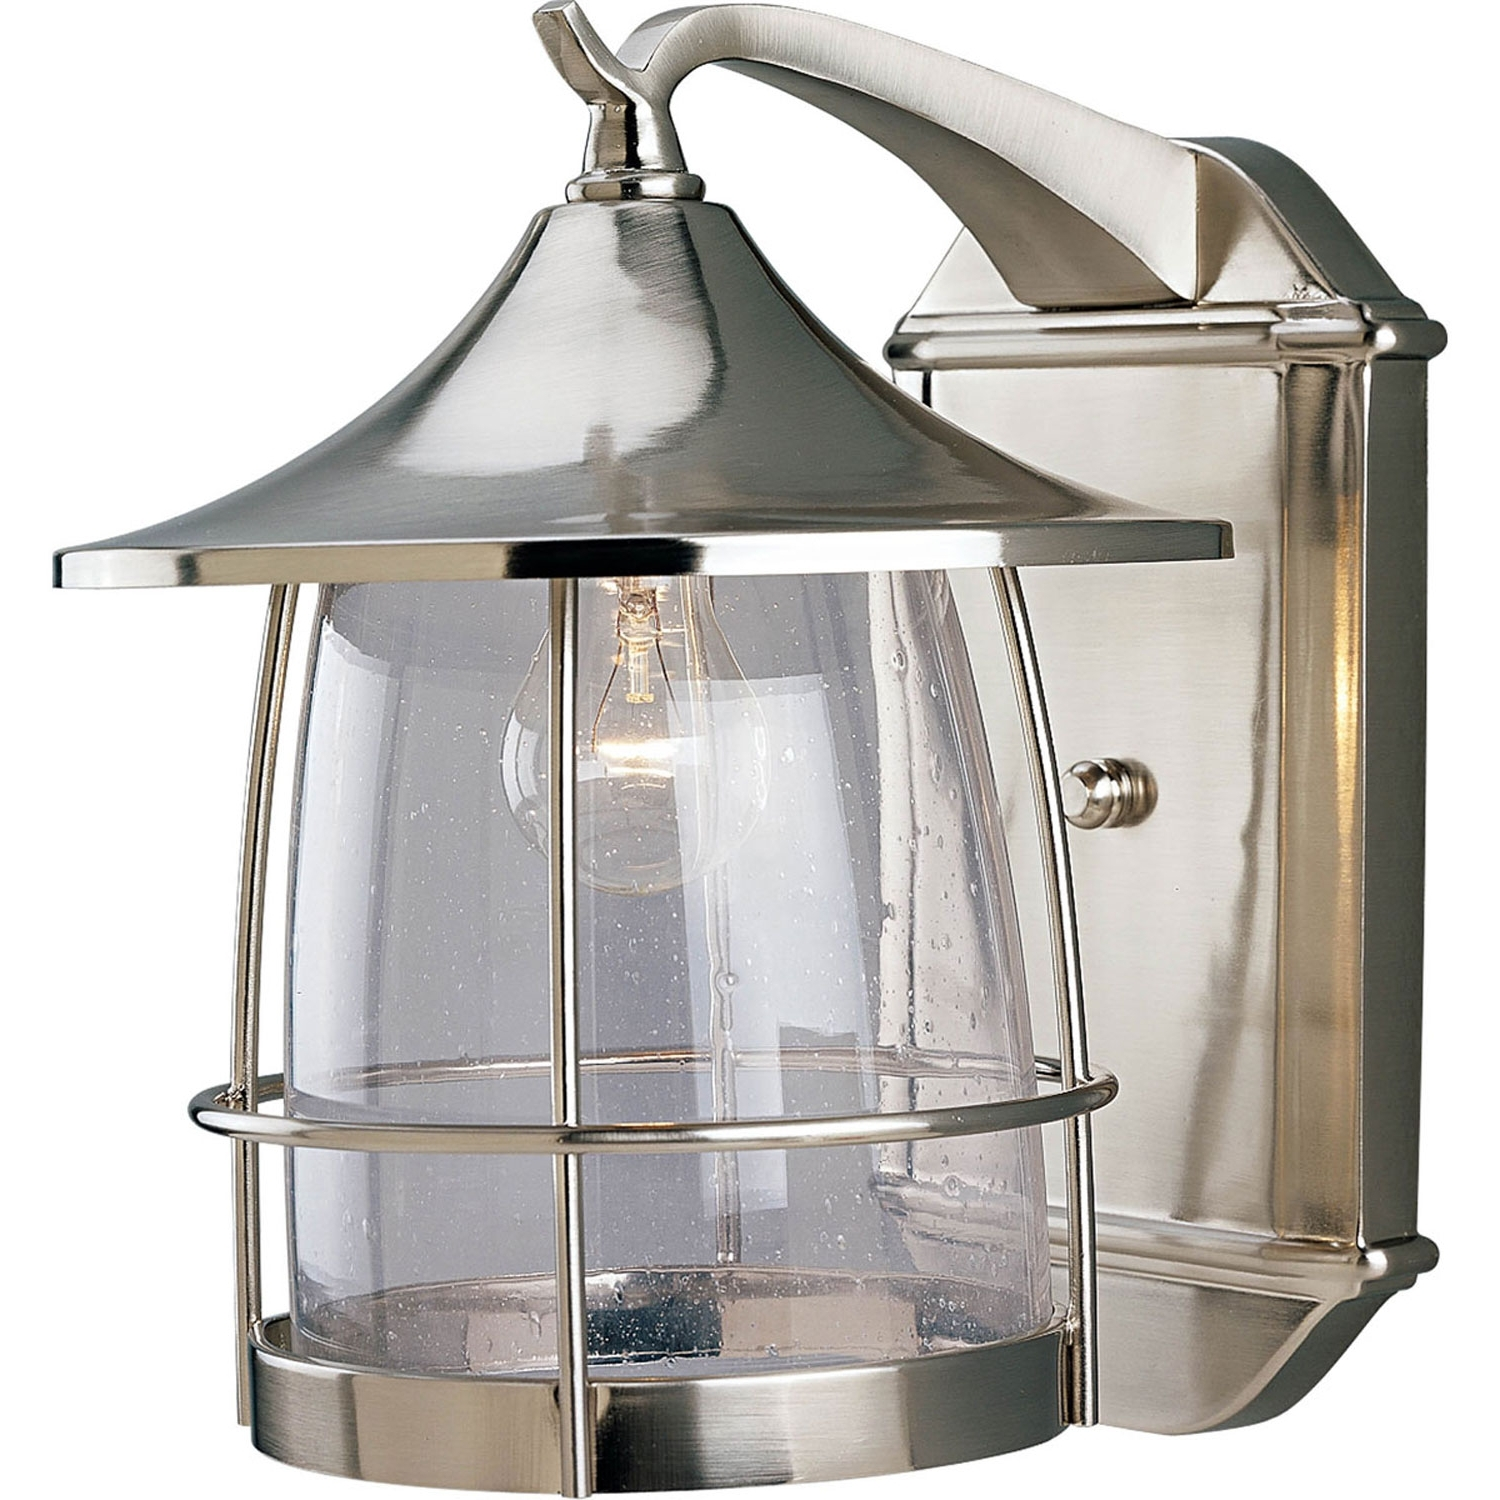 Brushed Nickel Outdoor Wall Lighting Inside Most Recent P5764 09: Prairie Brushed Nickel One Light Outdoor Wall Lantern (View 3 of 20)